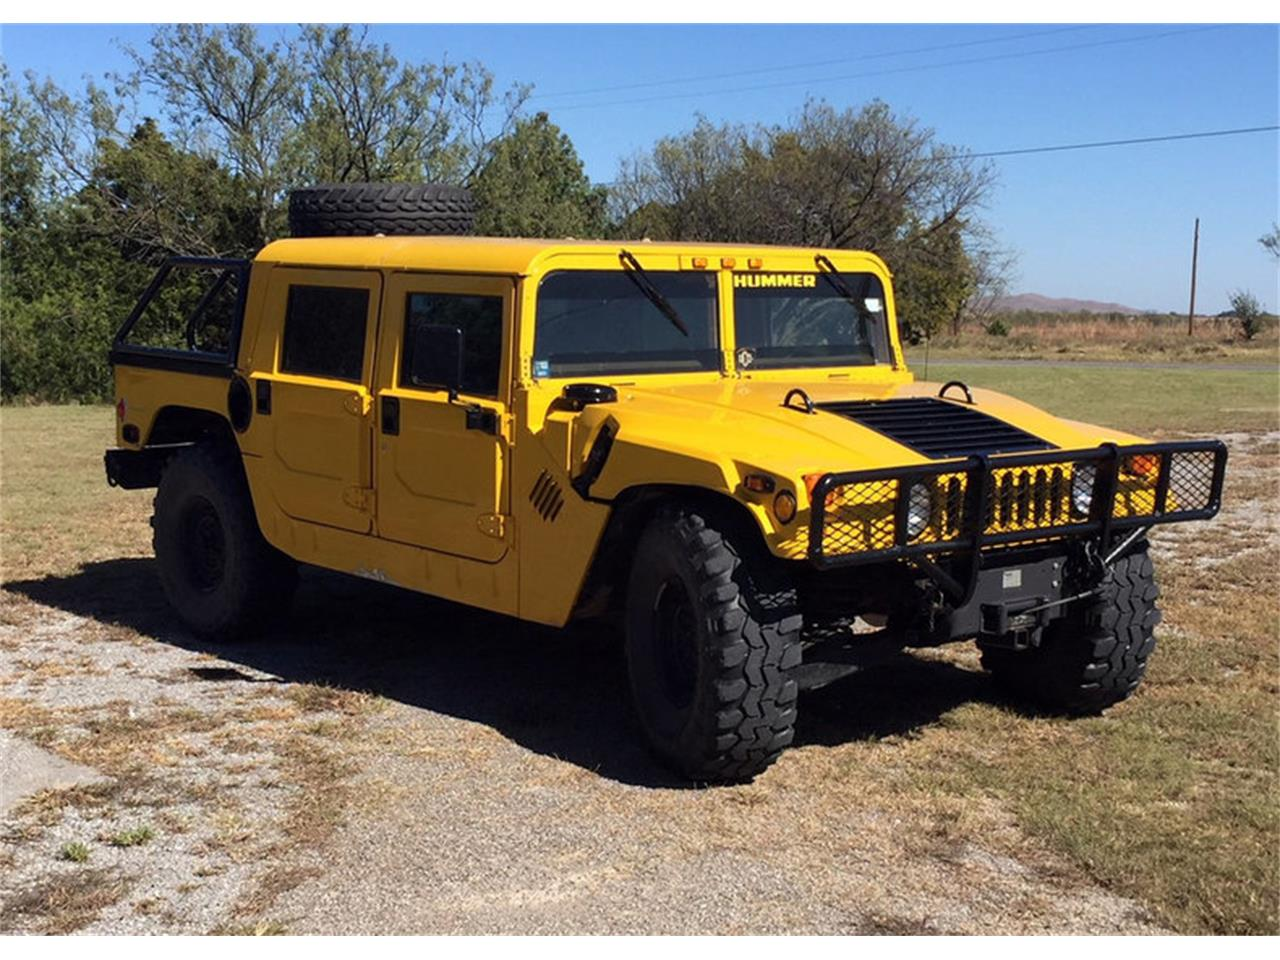 133 Hummer H13 for Sale | ClassicCars.com | CC-13037673 | hummer h1 for sale in texas